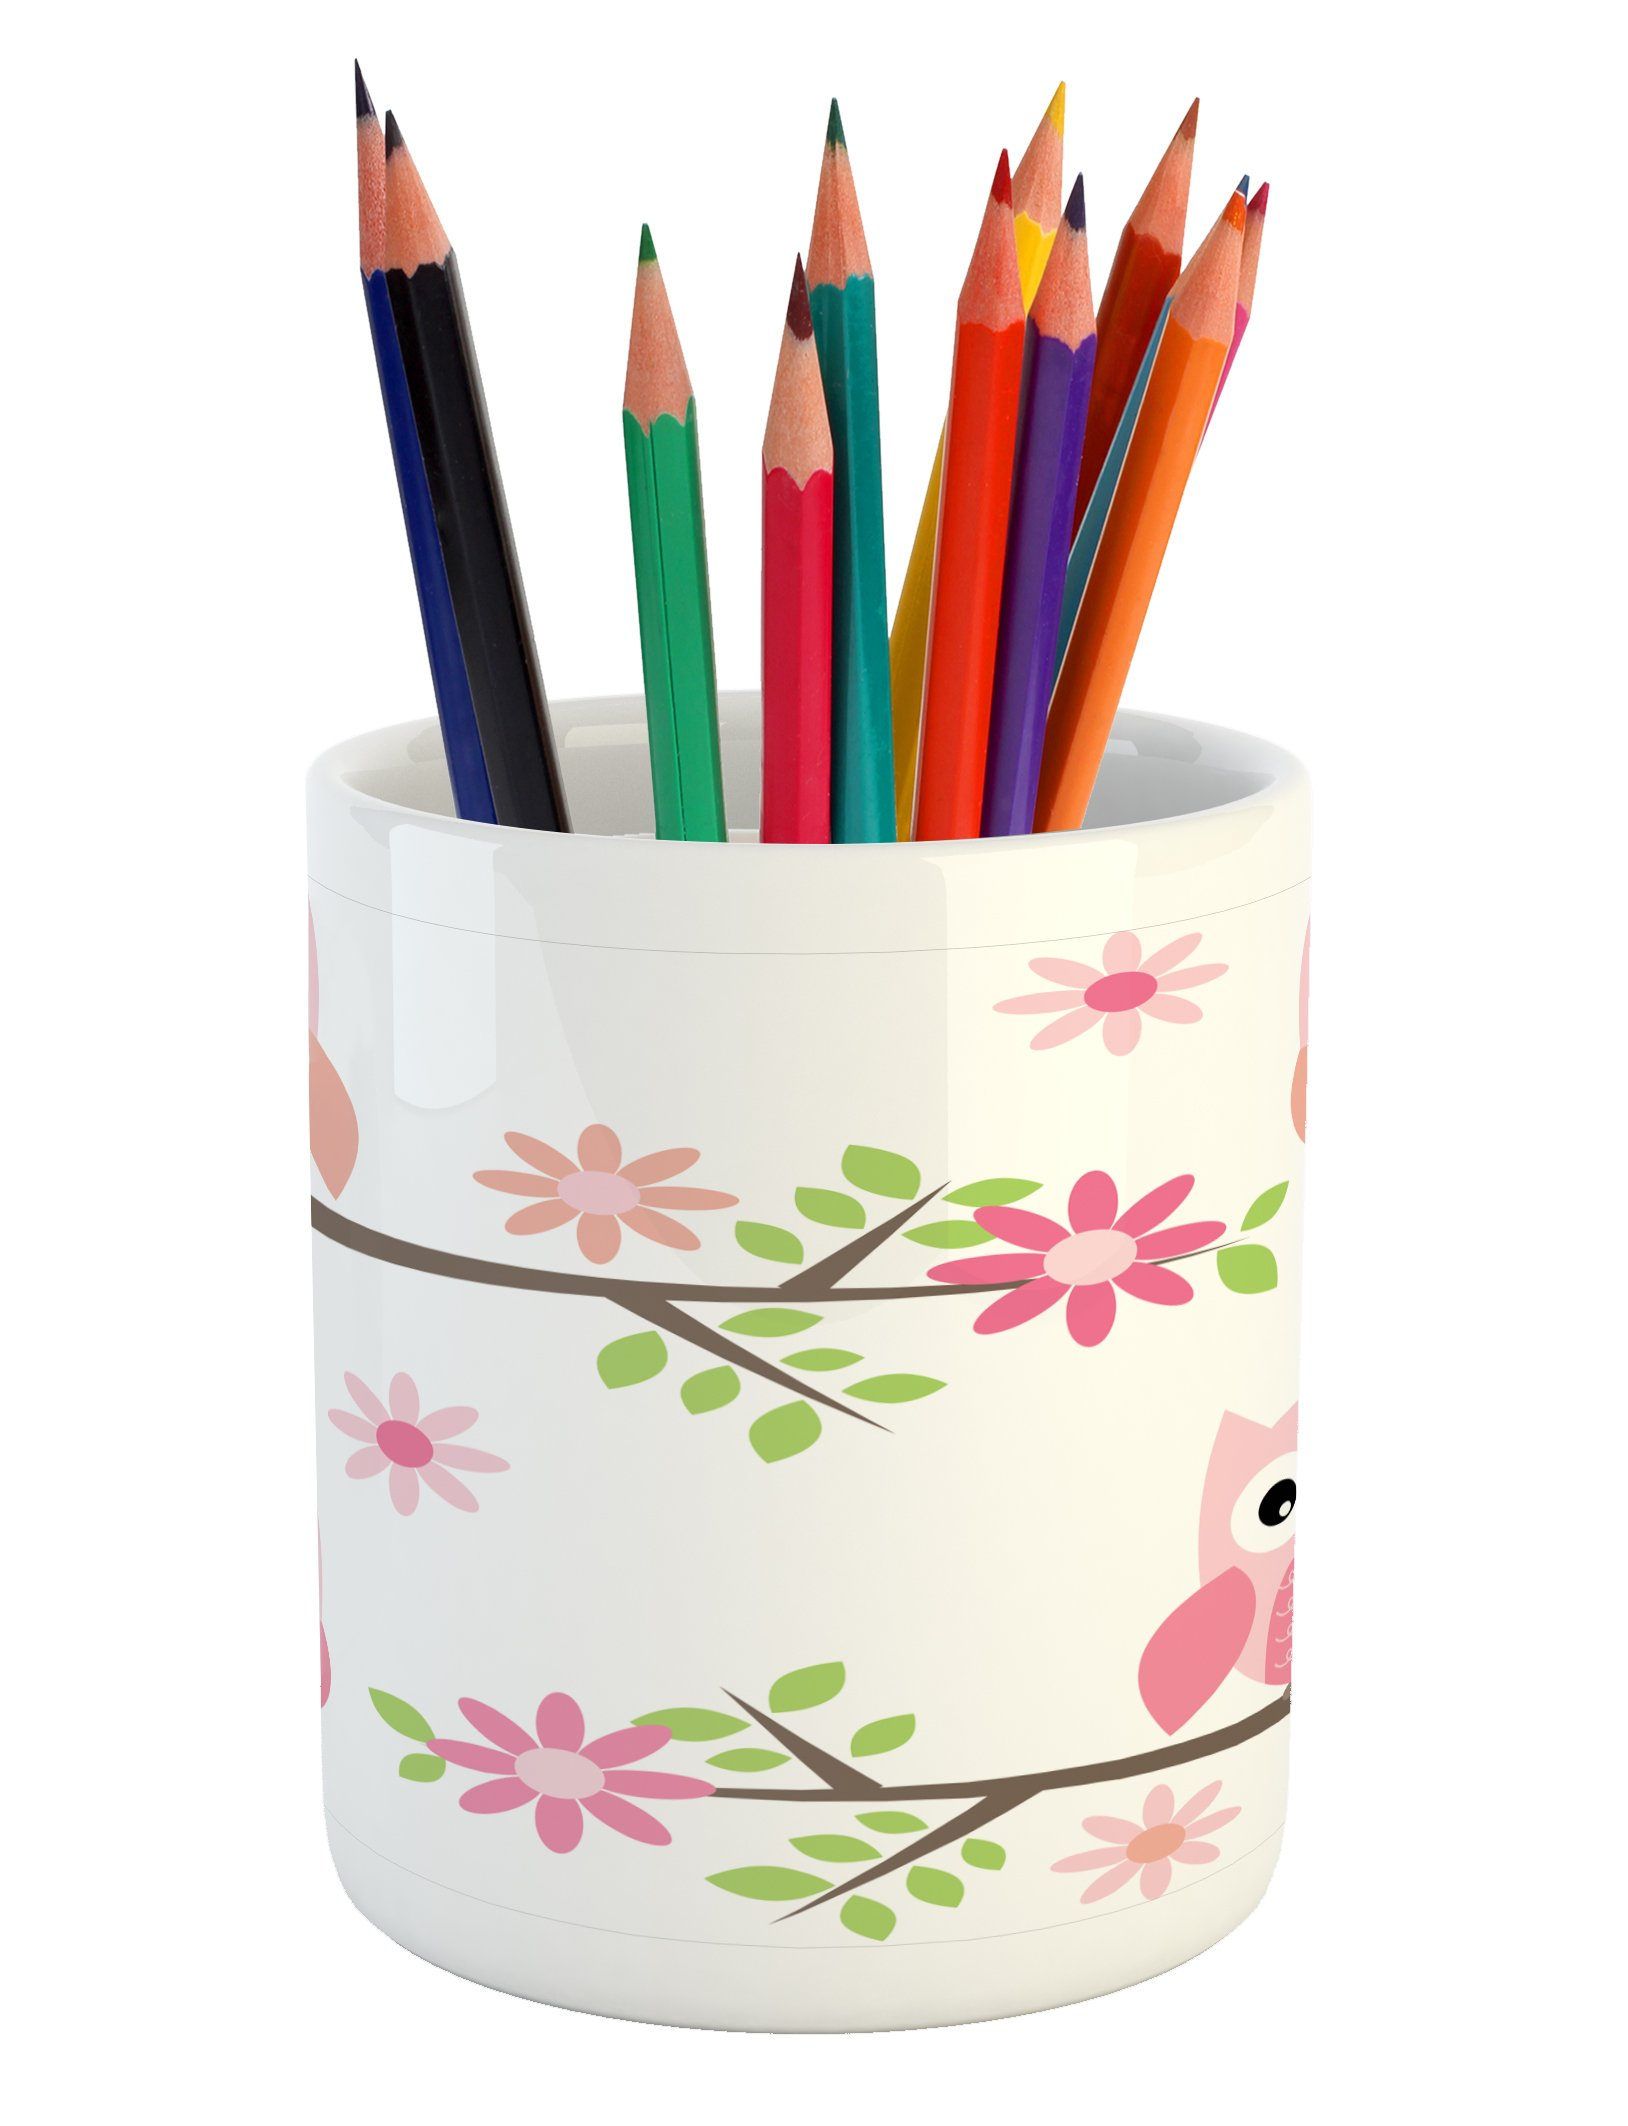 Ambesonne Owl Pencil Pen Holder, Cute Baby Owls Waving in The Floral Tree Springtime Artful Girly Design Print, Printed Ceramic Pencil Pen Holder for Desk Office Accessory, Pink Green White